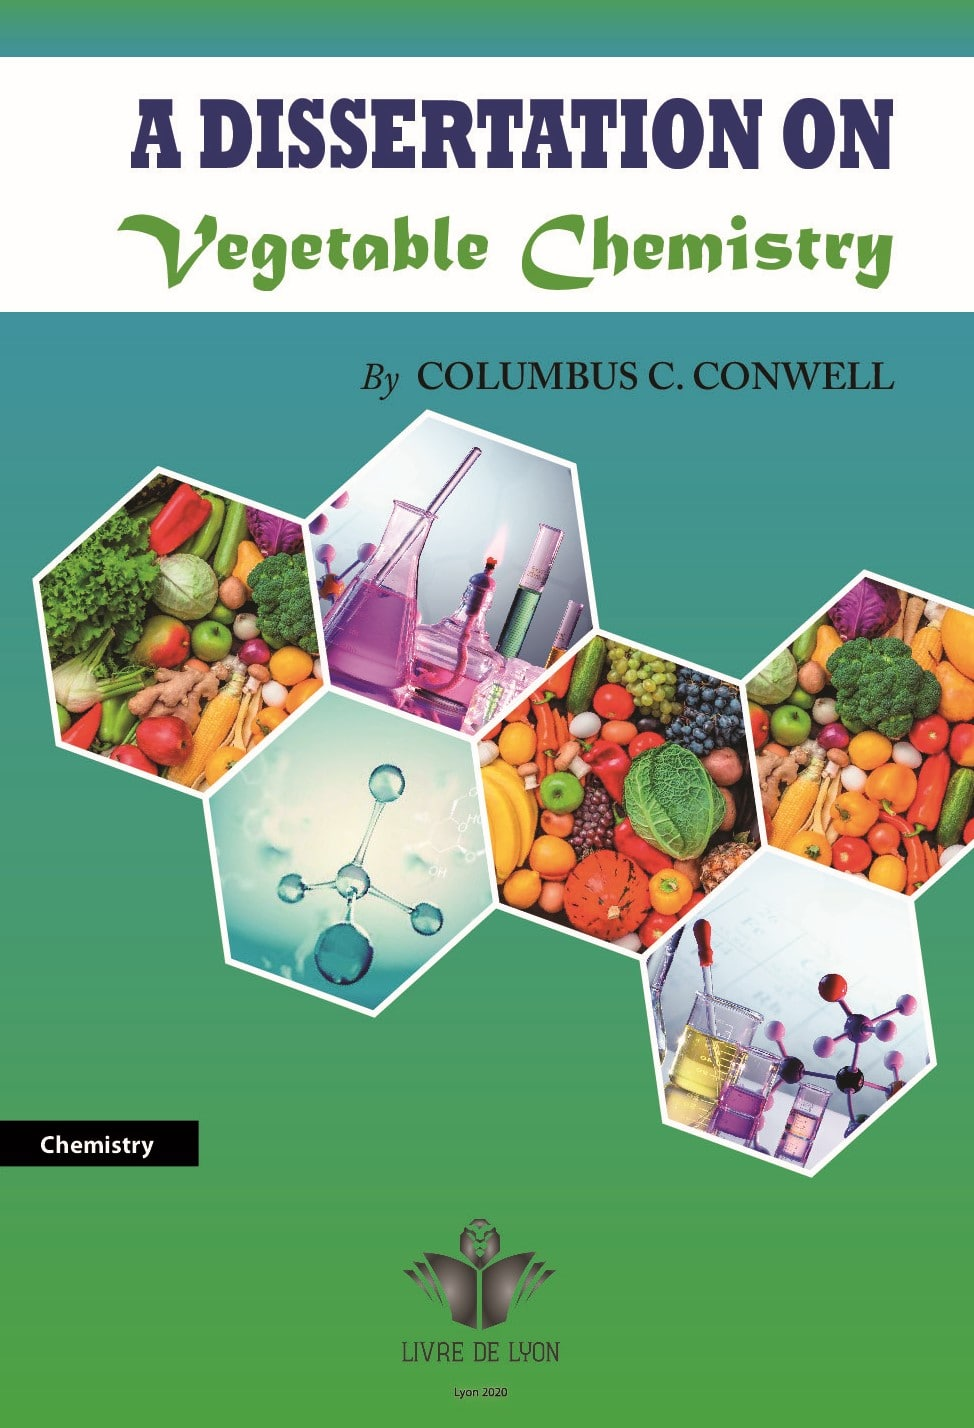 A Dissertation on Vegetable Chemistry